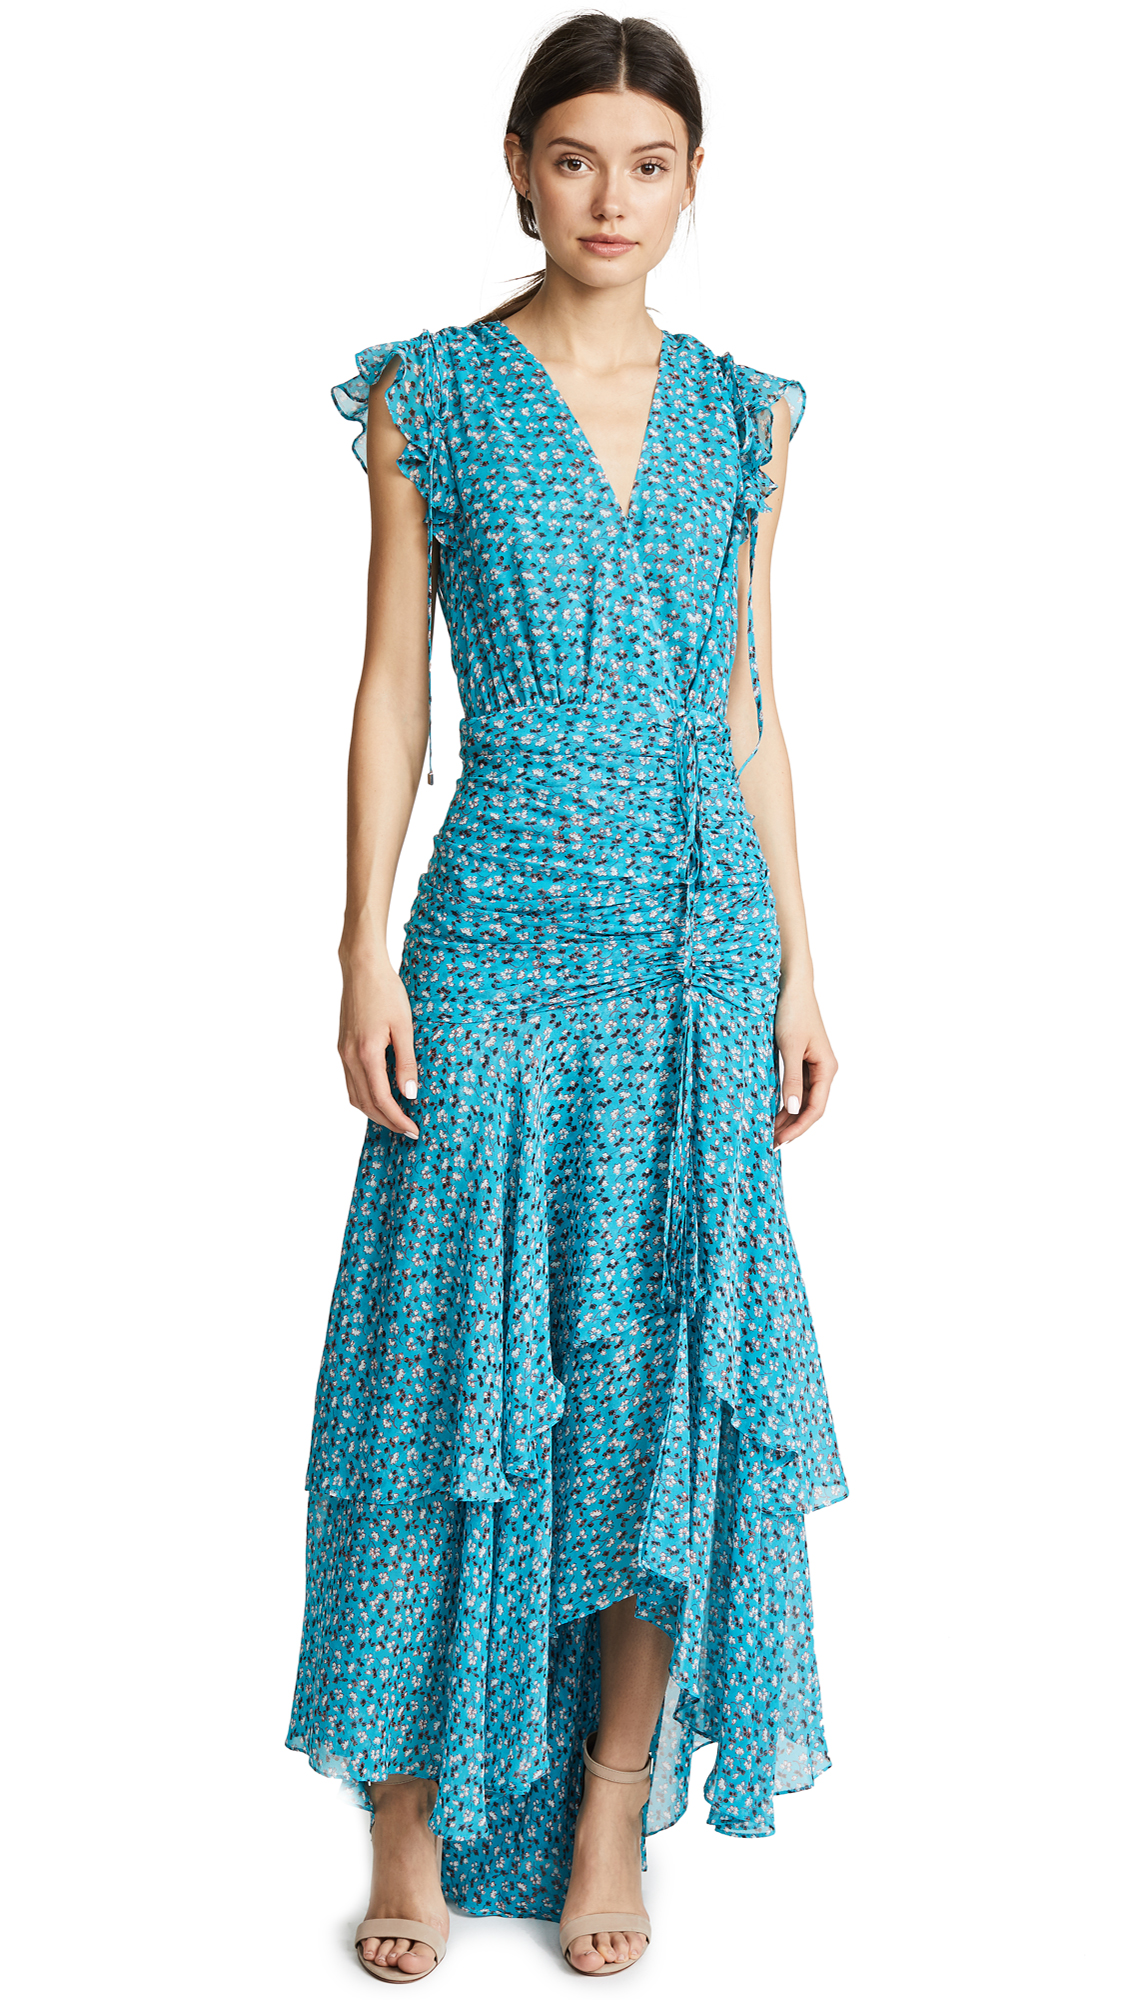 Veronica Beard Samara Dress In Blue